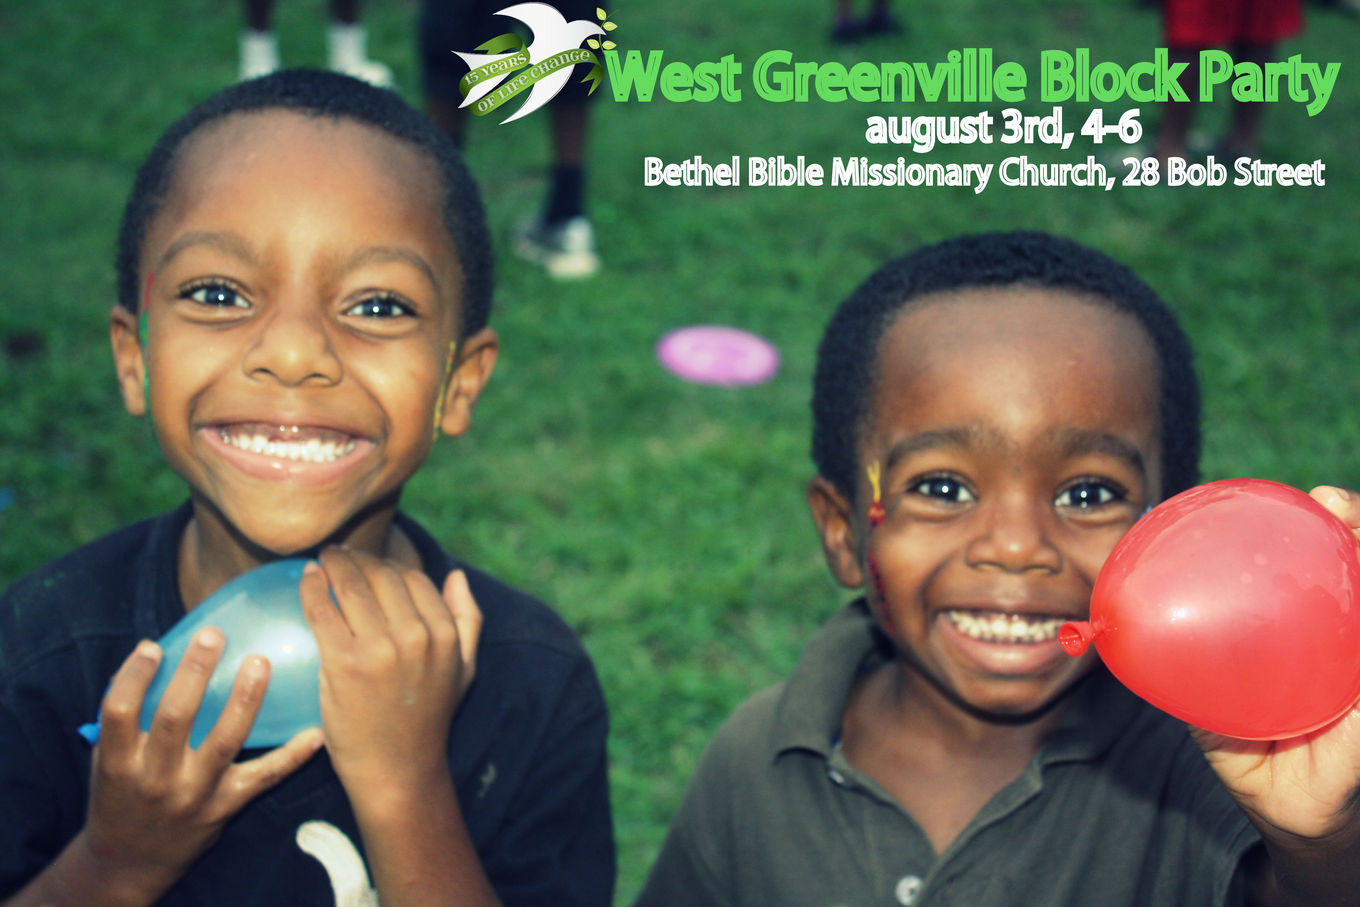 WGville Block Party Promo